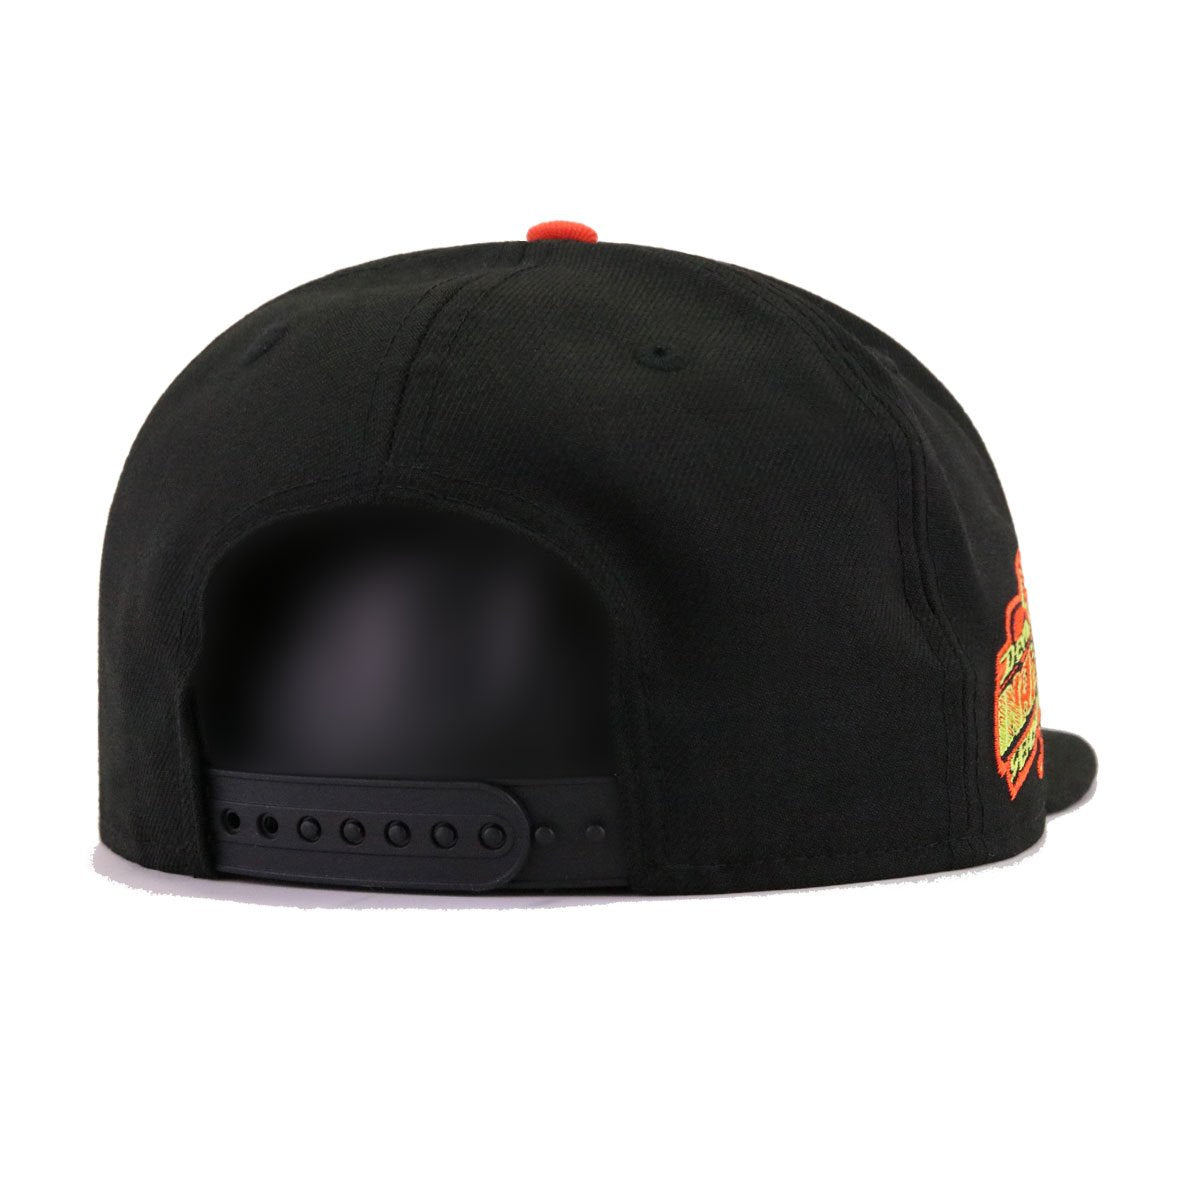 Tampa Bay Rays Black Cyber Green Orangeade 1998 Inaugural Season Cooperstown New Era 9Fifty Snapback